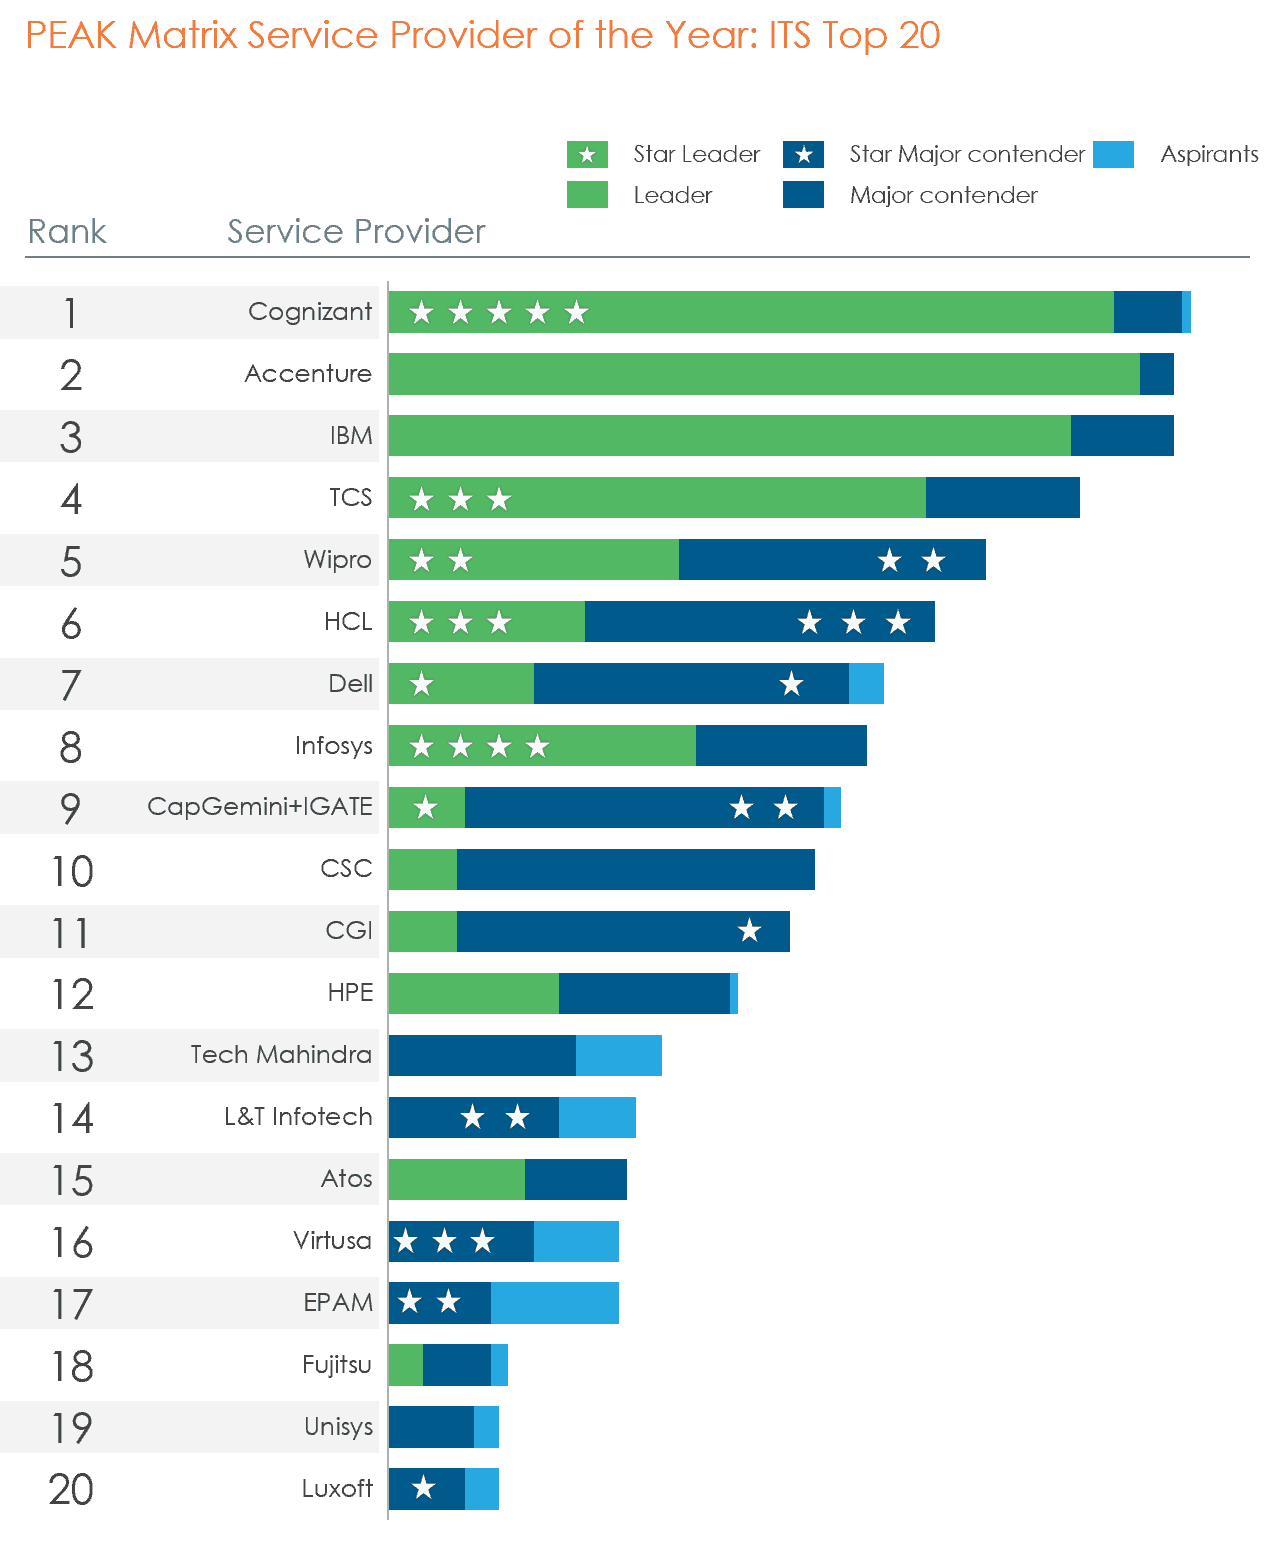 chart with ranking and awards categories of ITS Top 20 companies